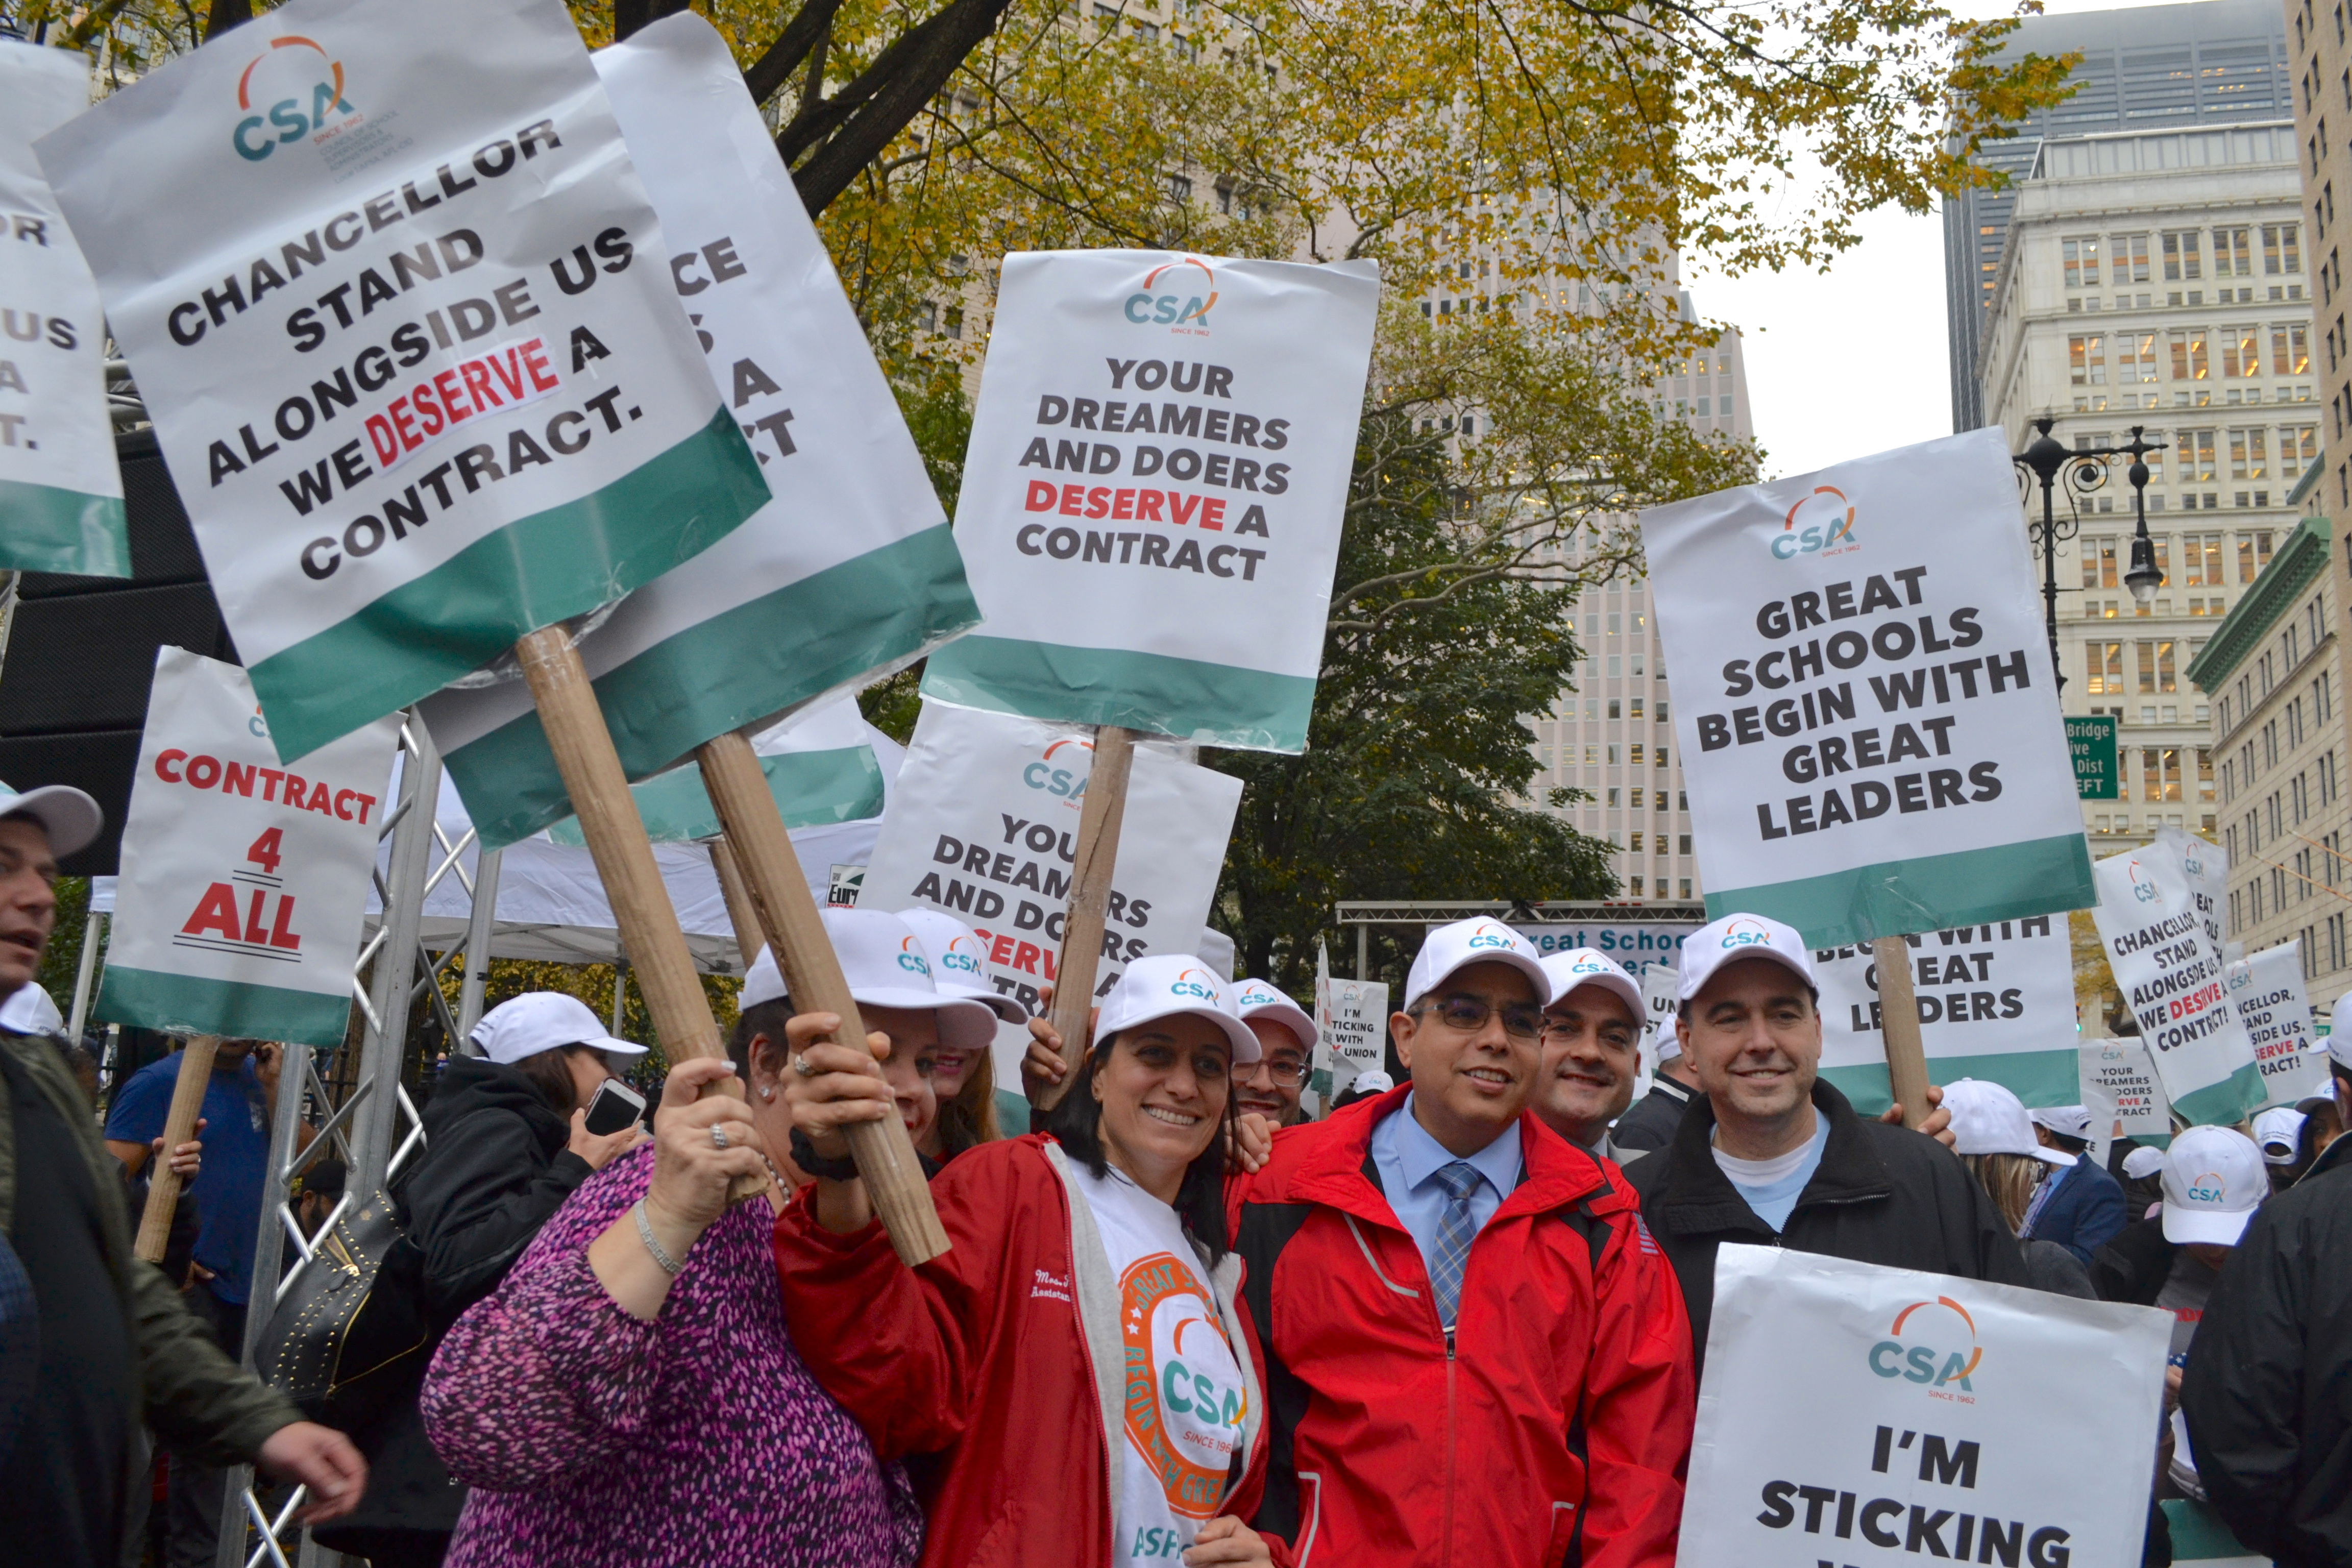 School Principals and Administrators Rally for Fair Contract; More Resources for NYC Kids